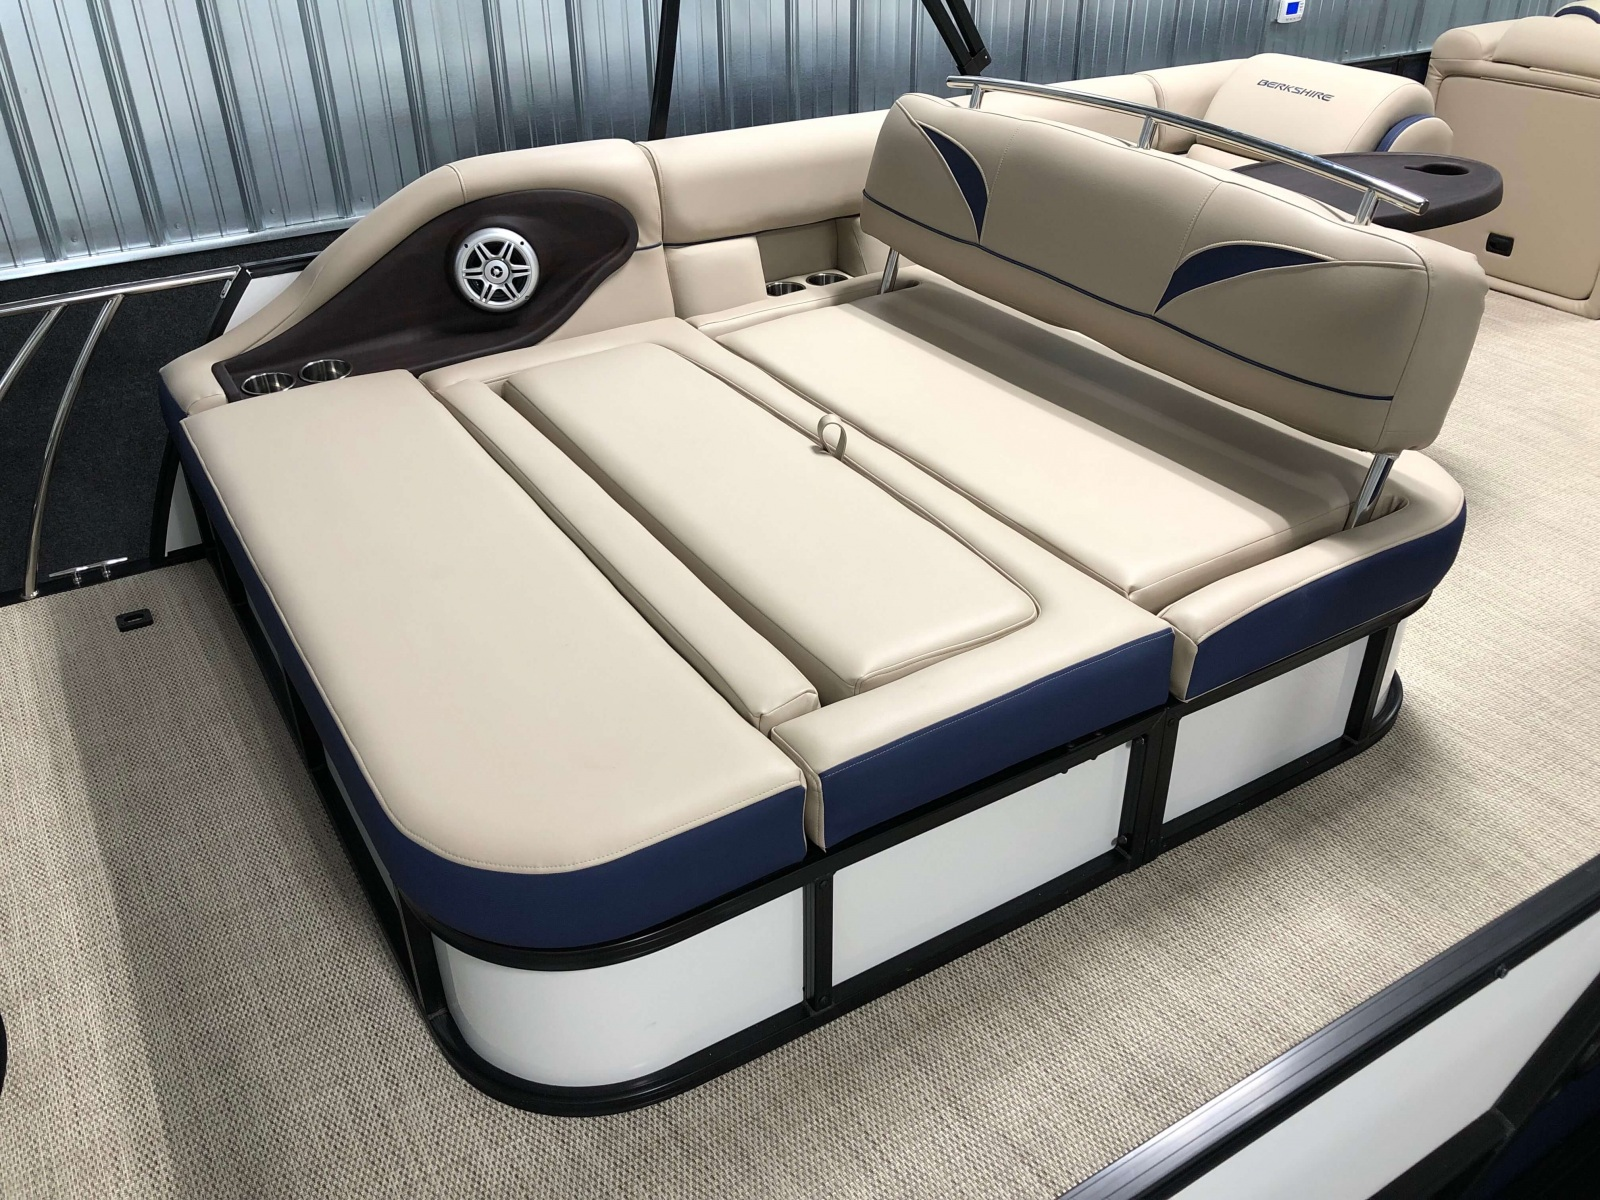 Rear Swing Back Seating of a 2019 Berkshire 23SB2 STS Pontoon